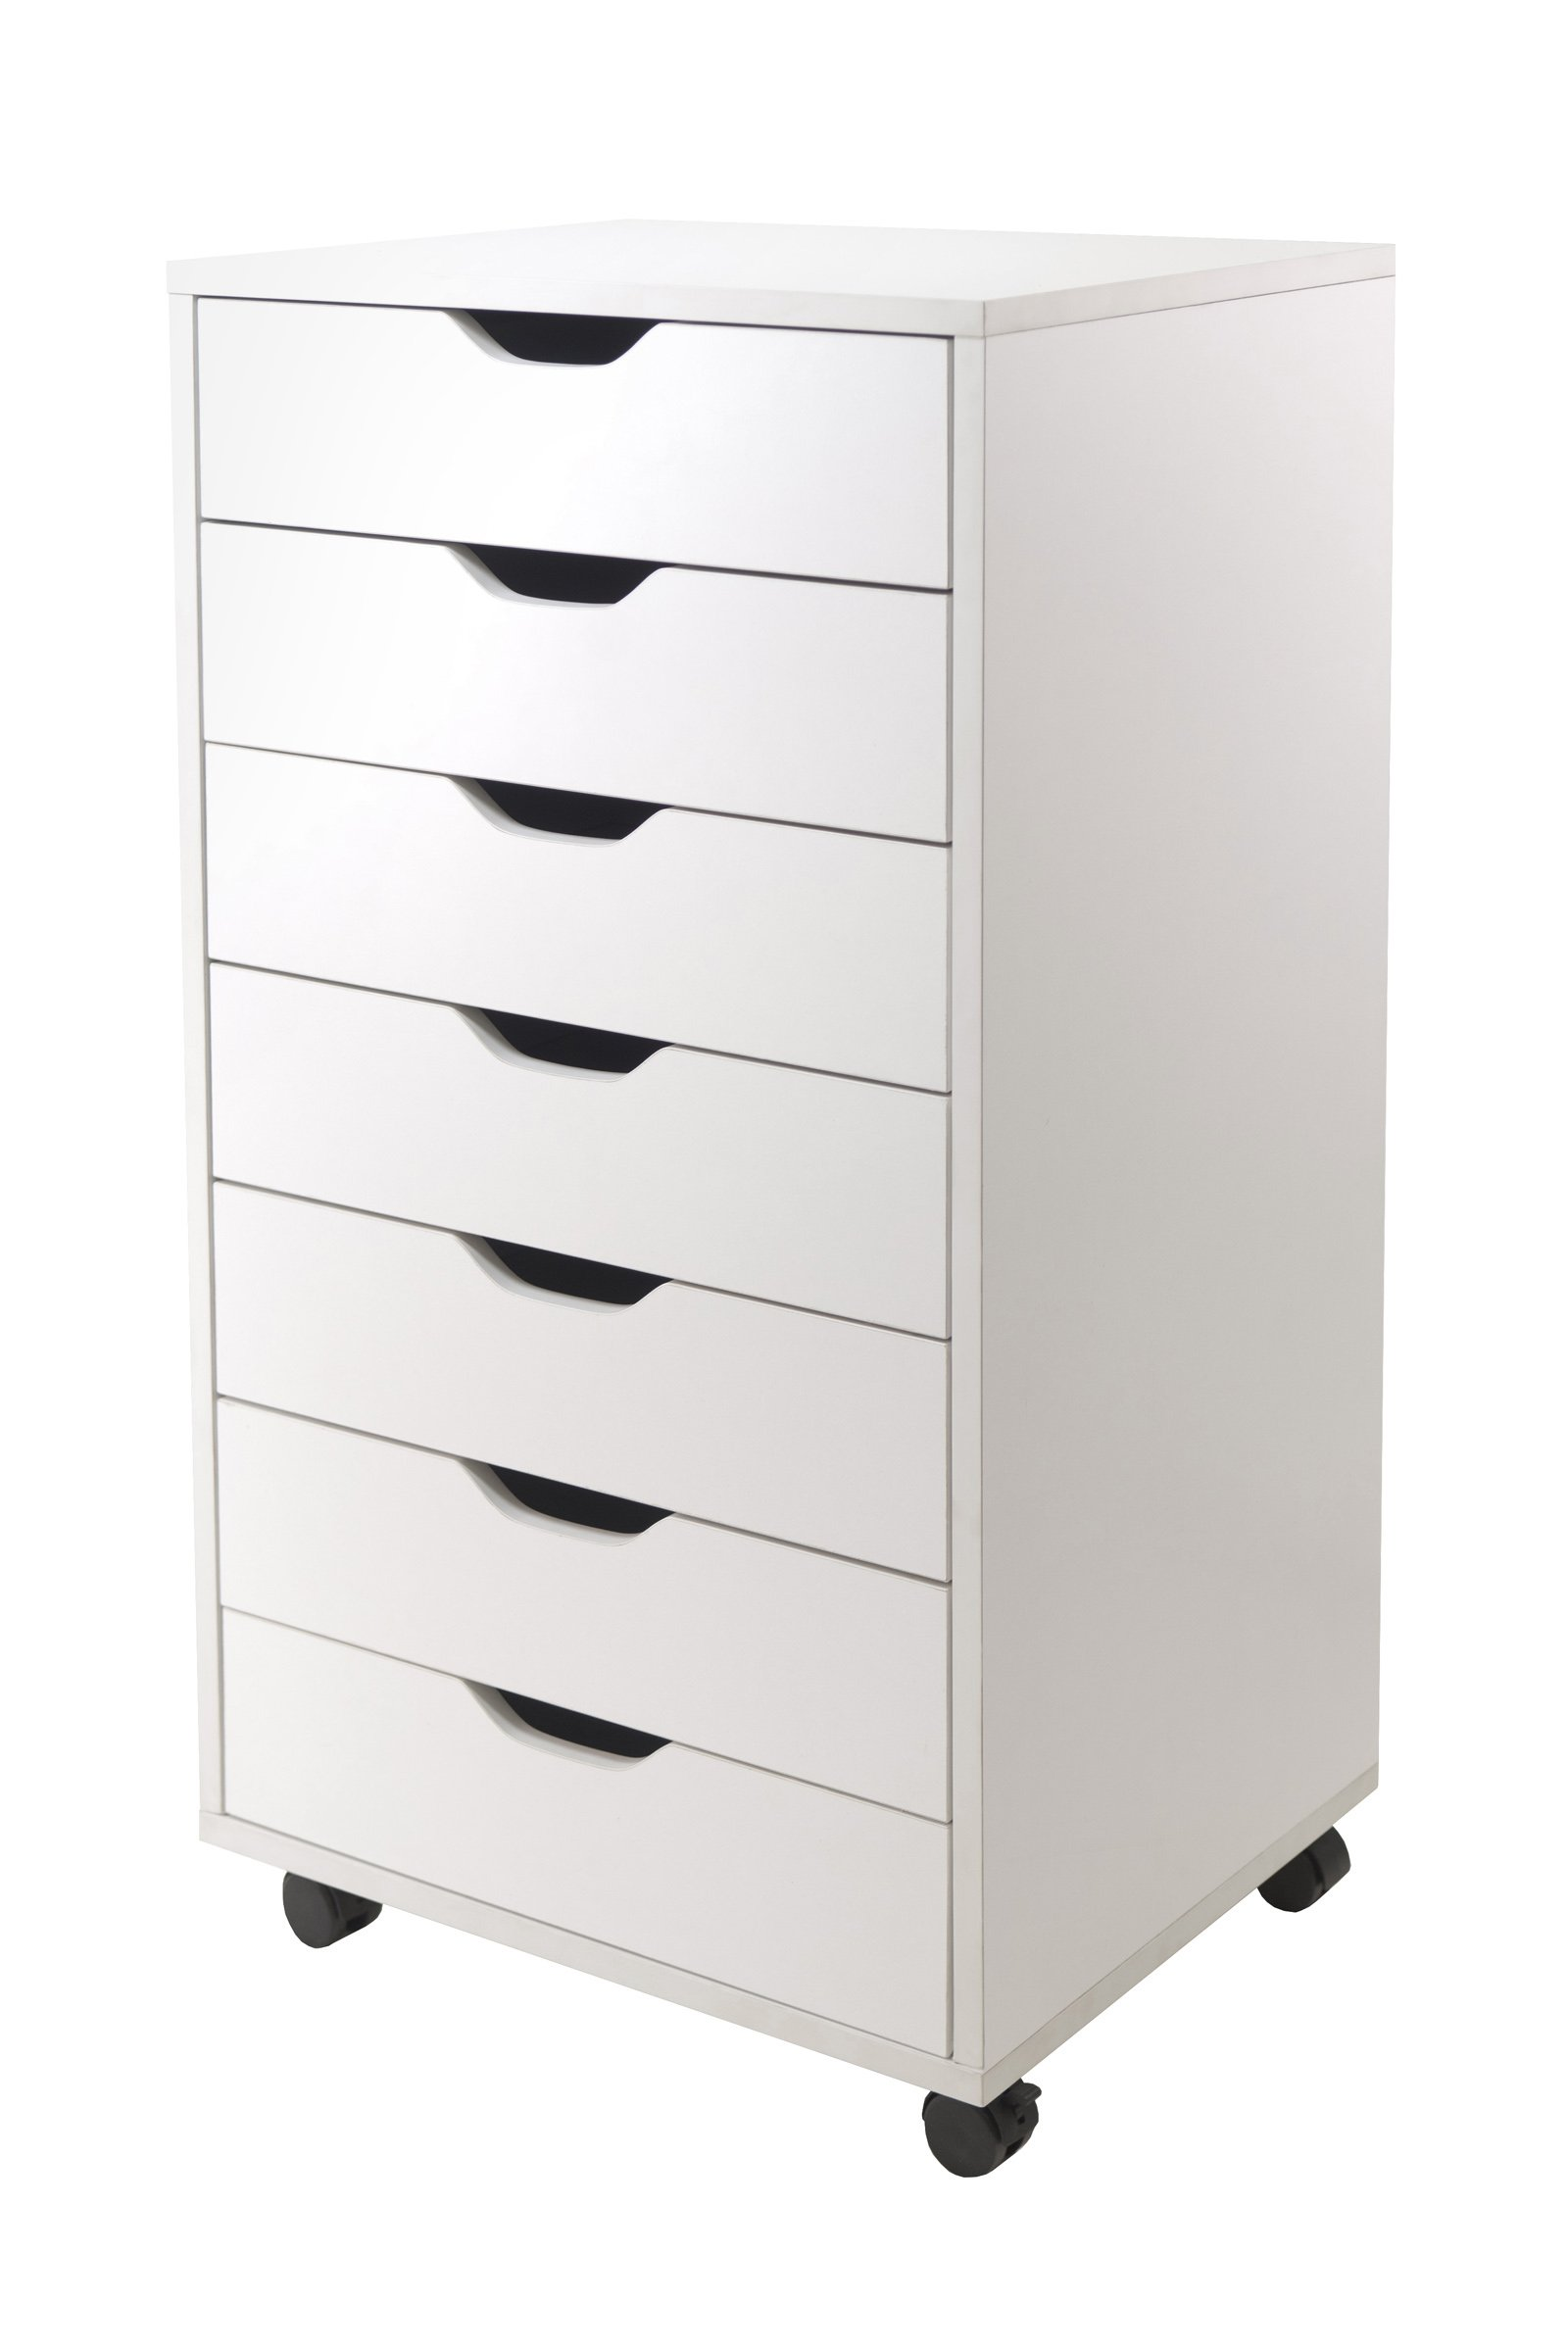 Winsome Halifax Cabinet for Closet/Office, 7 Drawers, White by Winsome